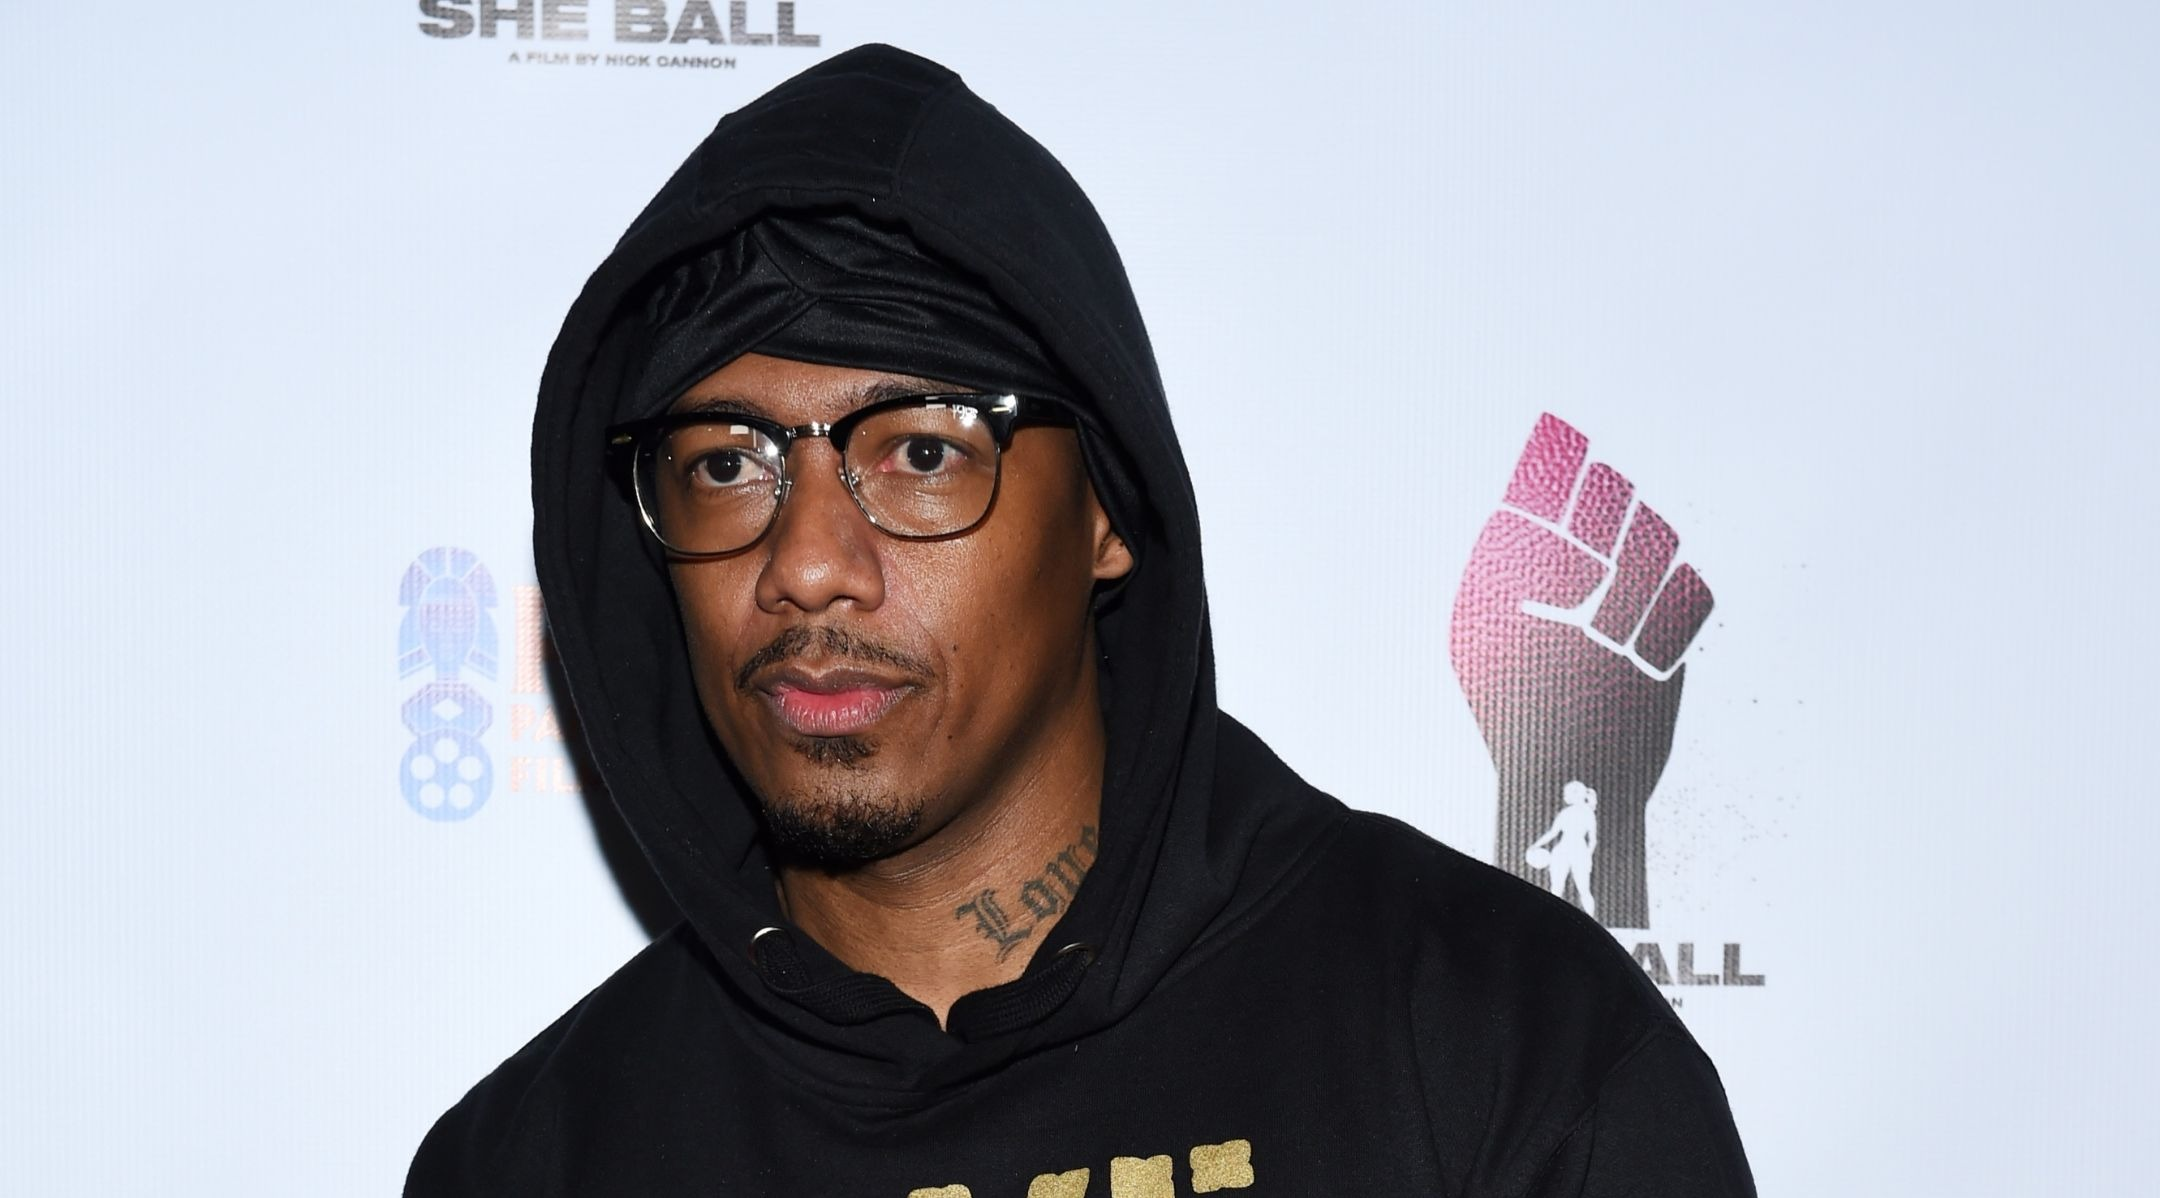 ViacomCBS fired Nick Cannon over anti-Semitic comments. He claims he's gotten an 'outpouring of love'...